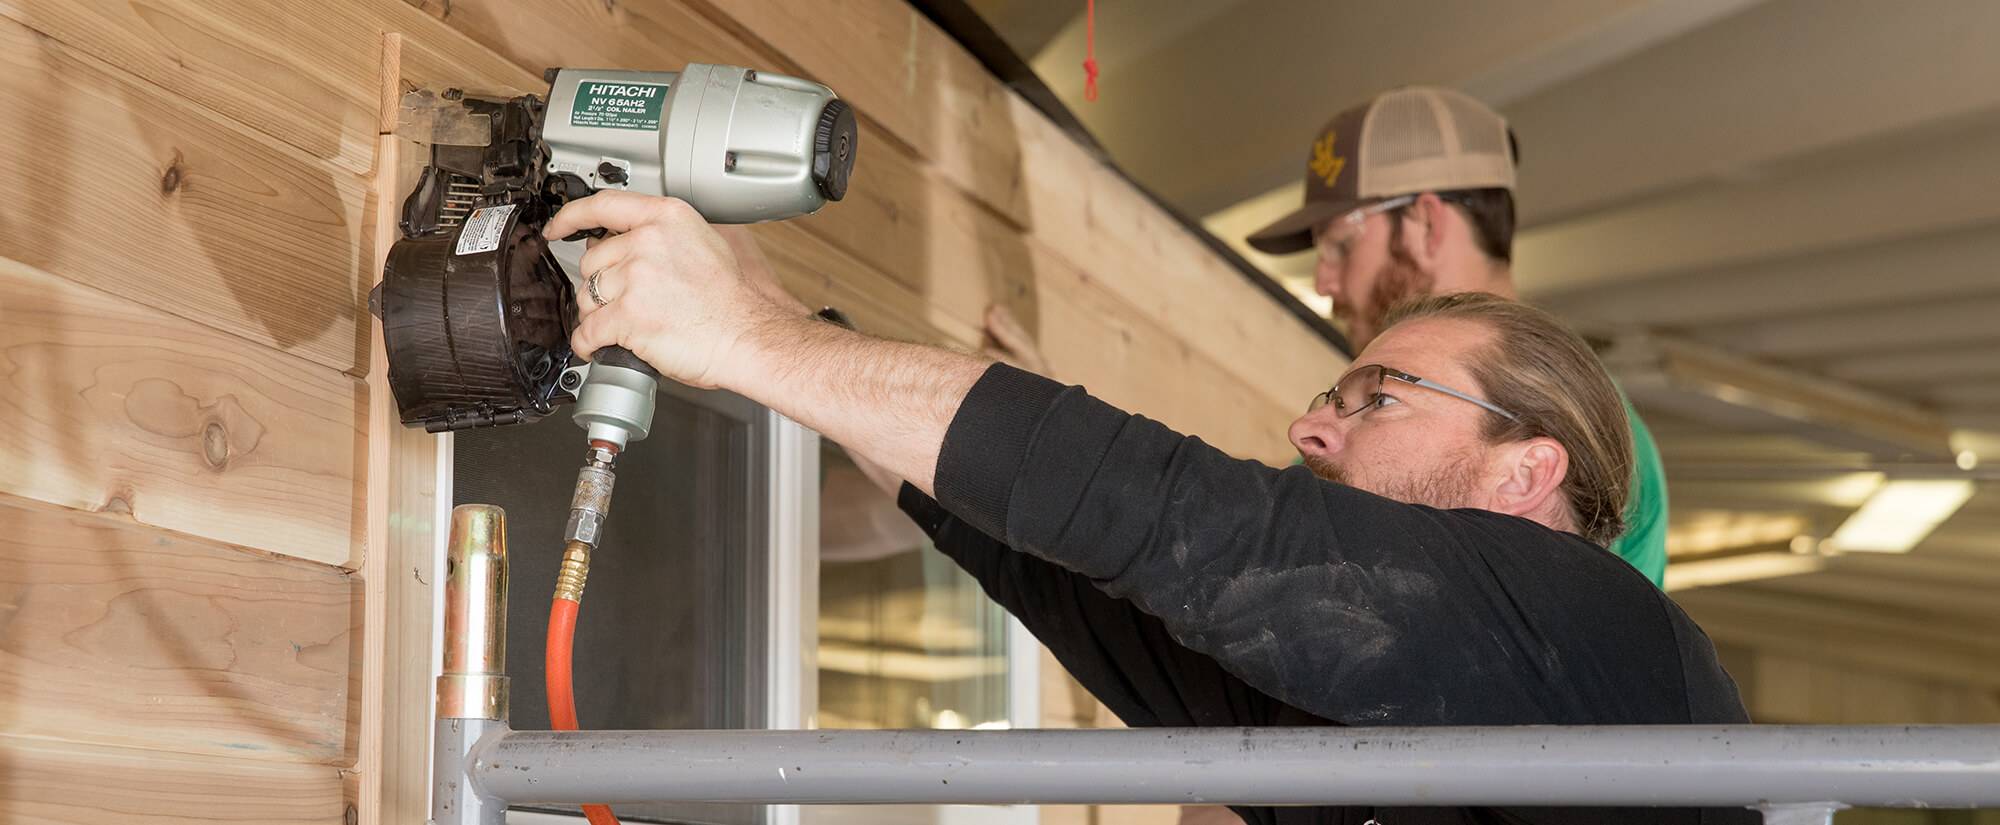 A student uses a nail gun to frame a window of a tiny home.